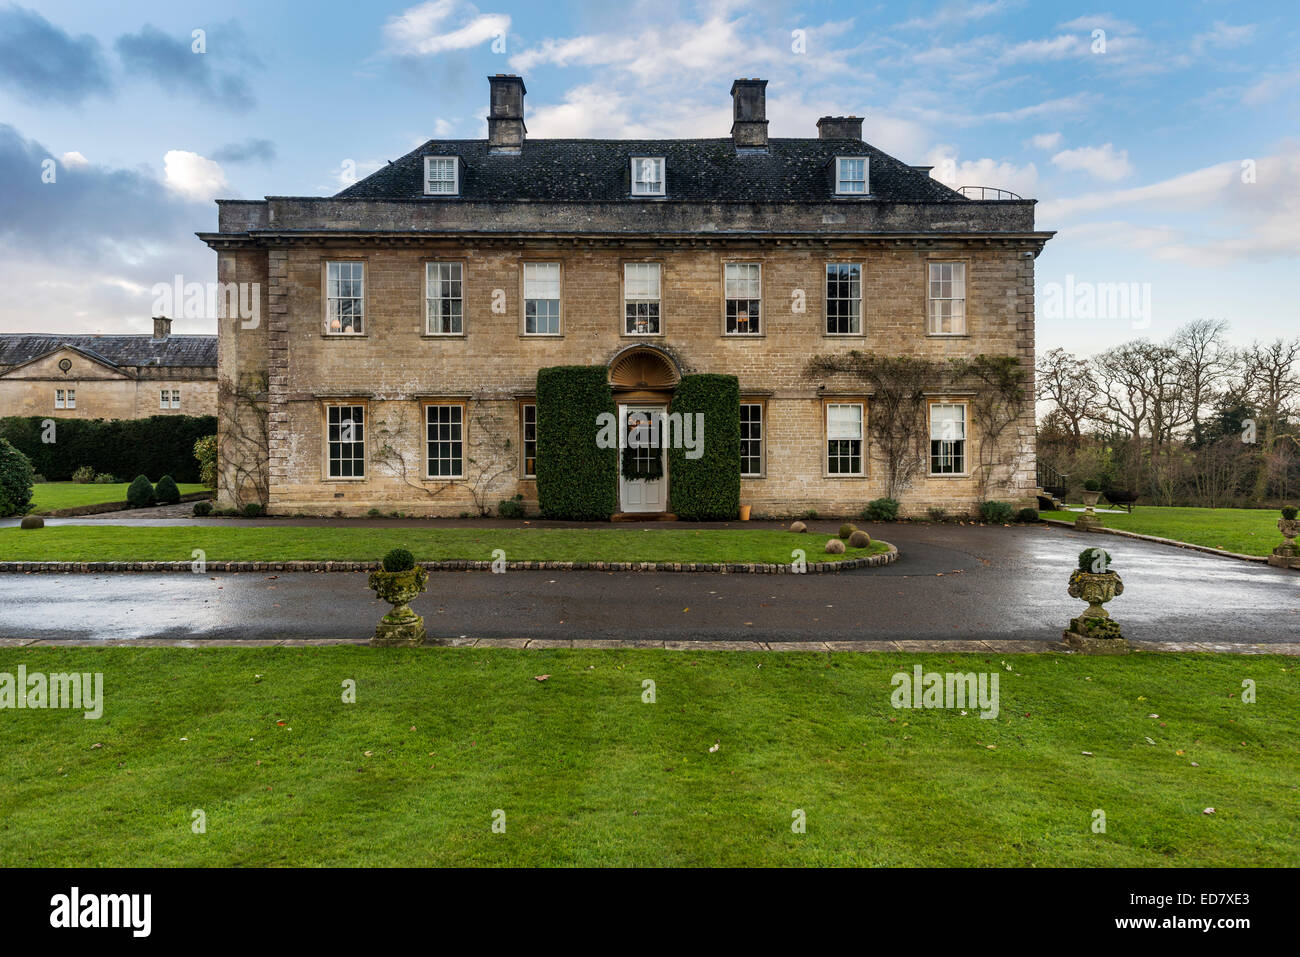 Babington House is a private members club in Somerset owned by Nick Jones, founder of Soho House. - Stock Image